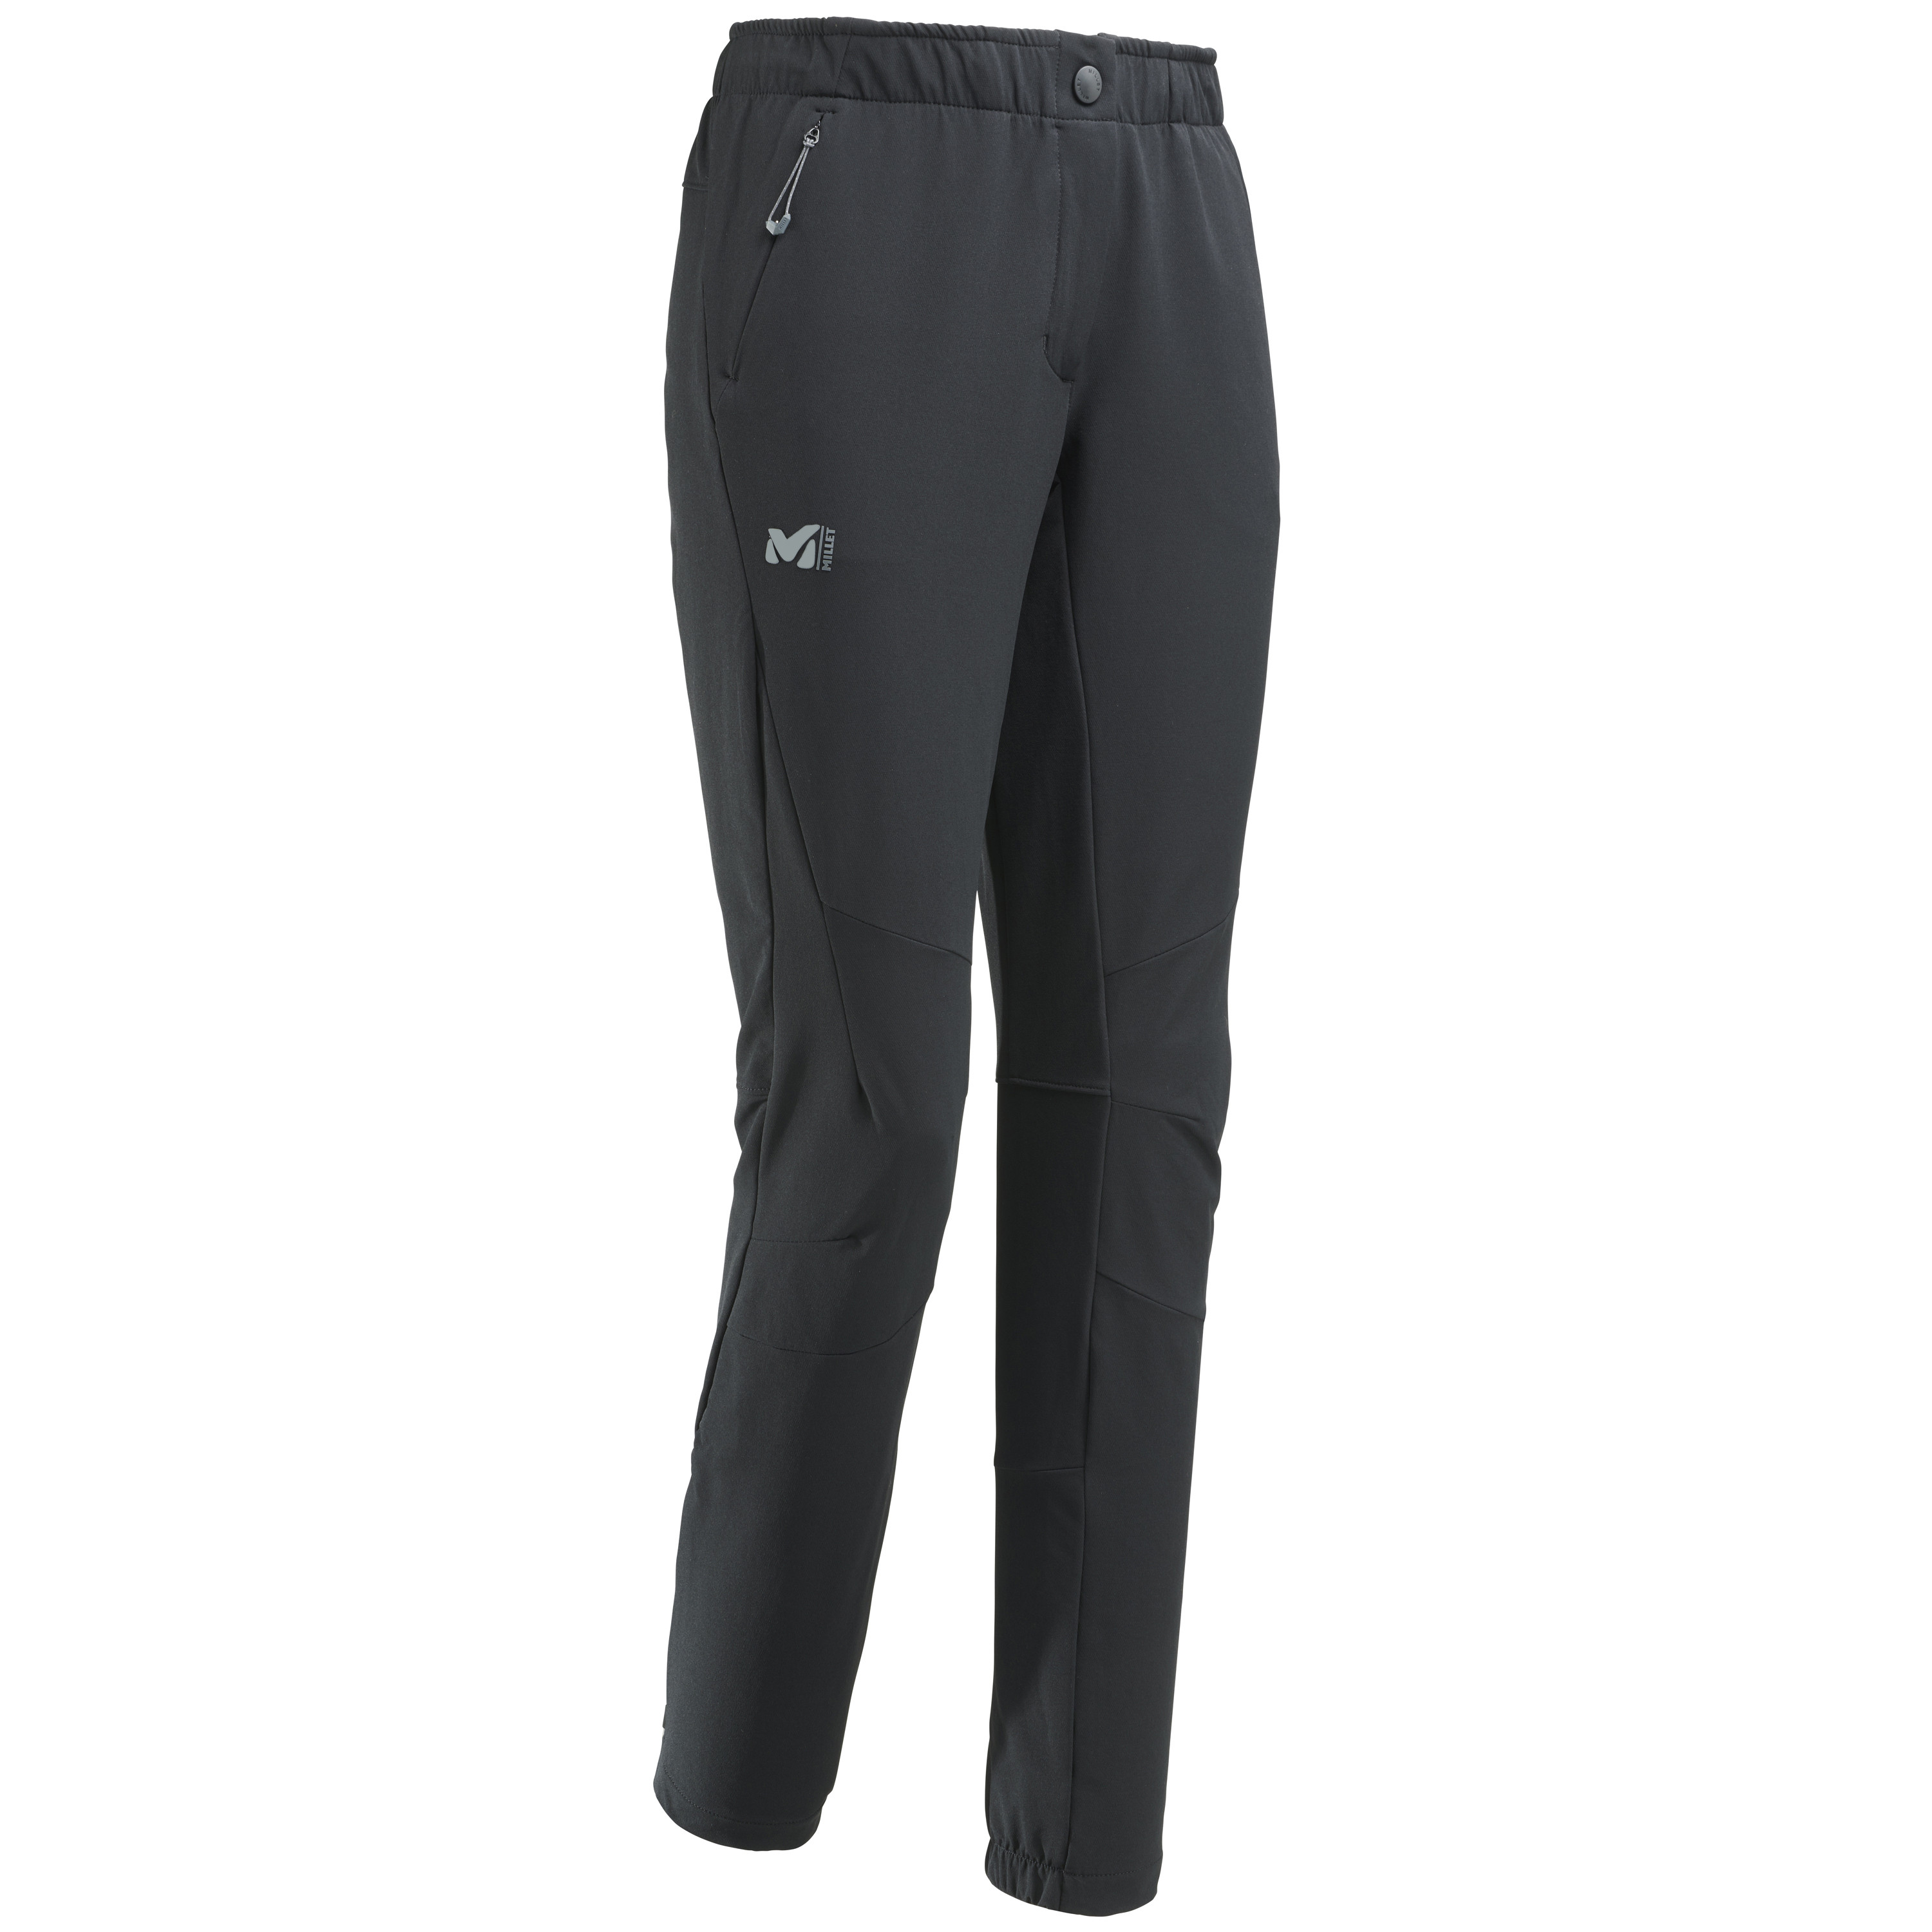 LD SUMMIT 200 XCS PANT